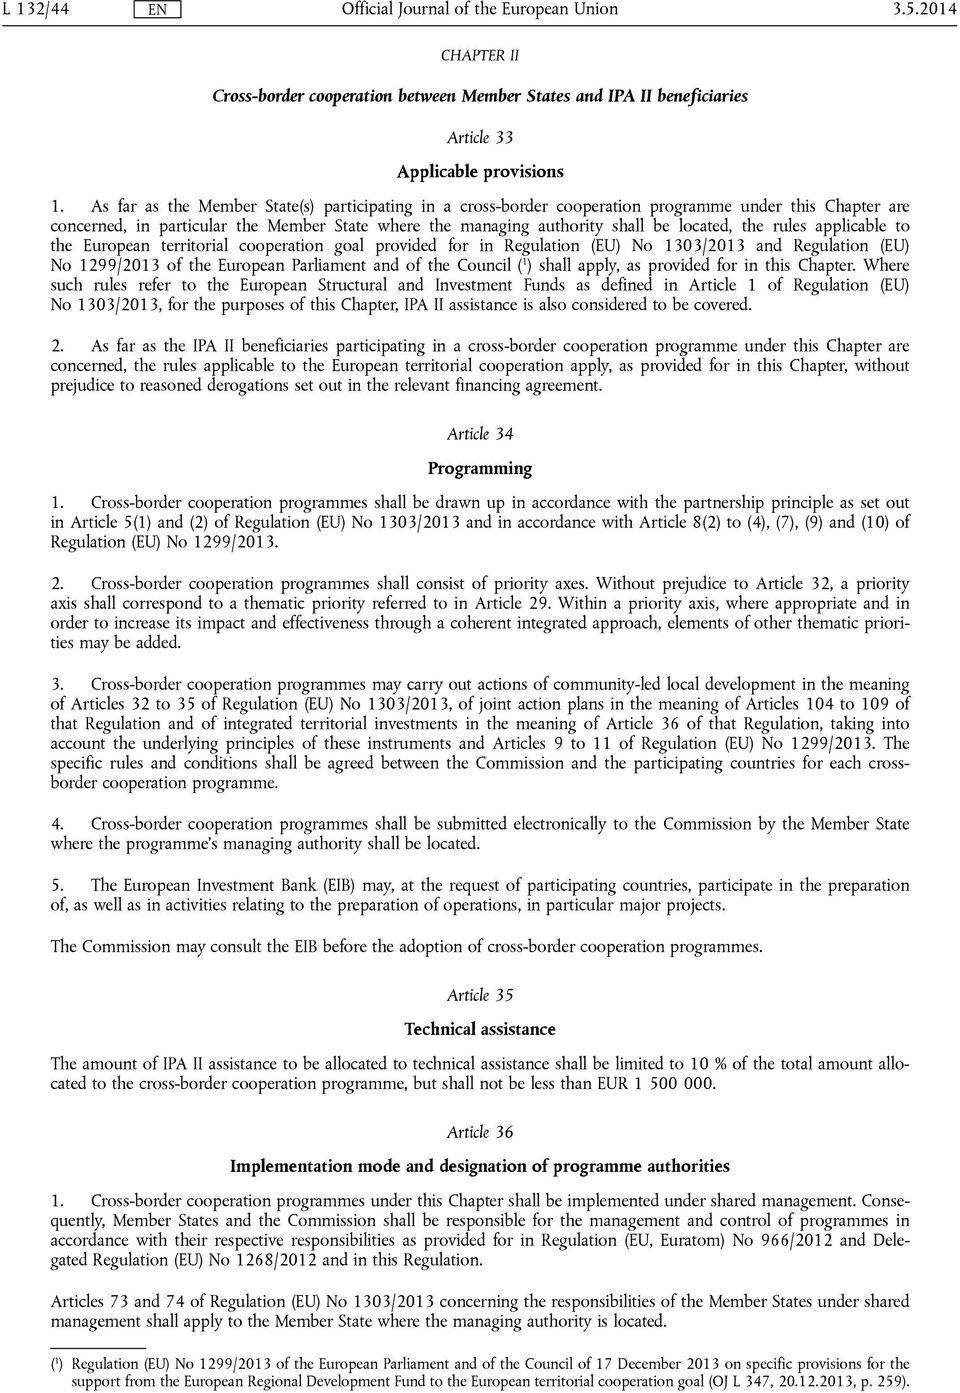 rules applicable to the European territorial cooperation goal provided for in Regulation (EU) No 1303/2013 and Regulation (EU) No 1299/2013 of the European Parliament and of the Council ( 1 ) shall